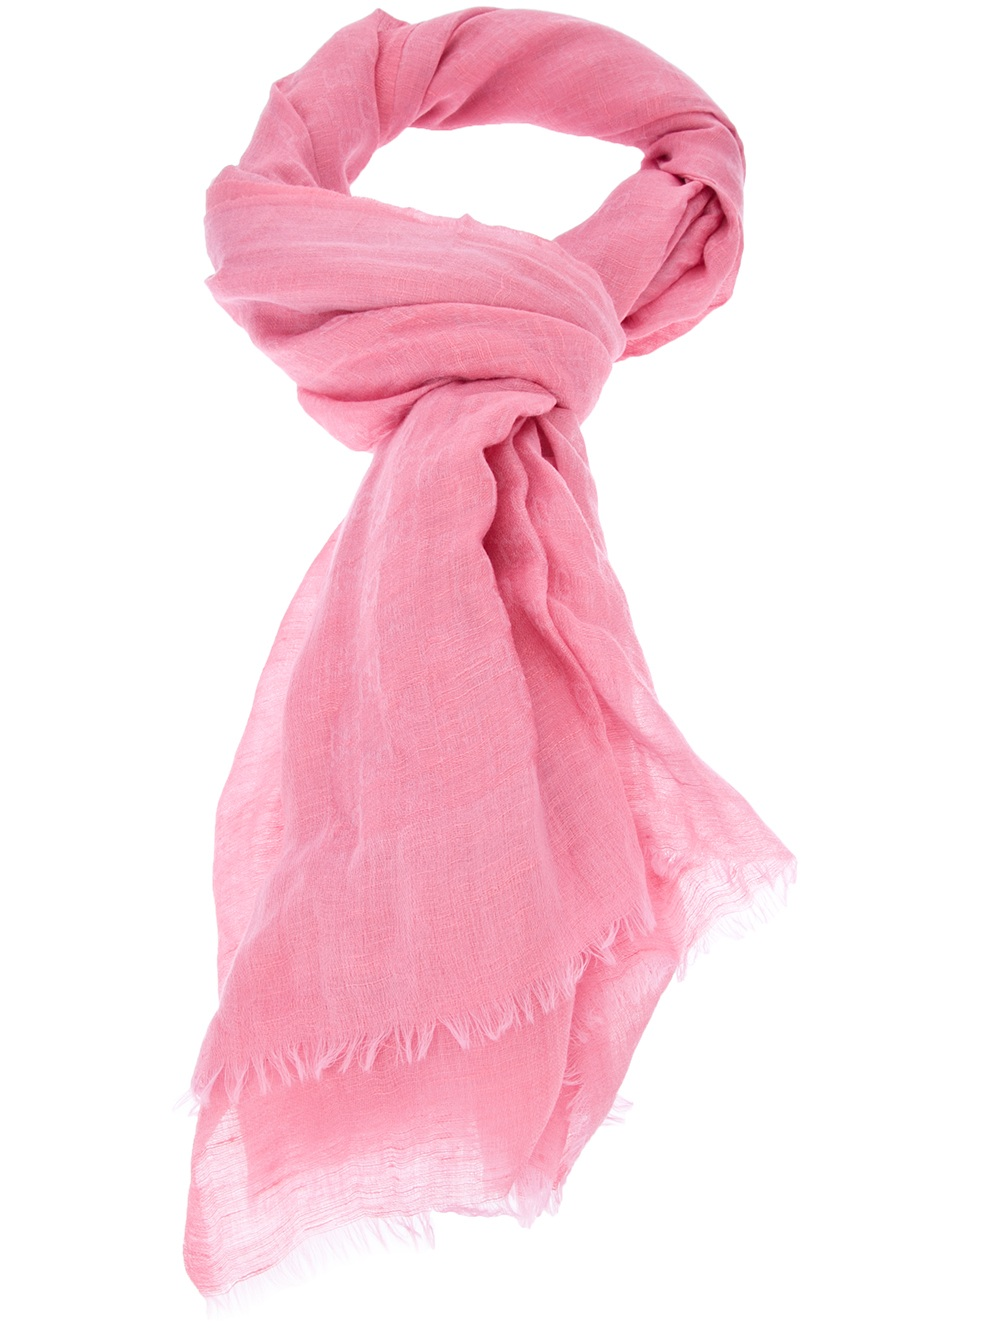 Shop the complete collection of women's scarves from Burberry. Explore a selection of designs, and filter by material and colour. Women's Scarves. New scarf styles and refreshed classics in myriad shades. Pink Purple Red Yellow White. Show Results Clear. Clear All. Sort by price. High. Low.